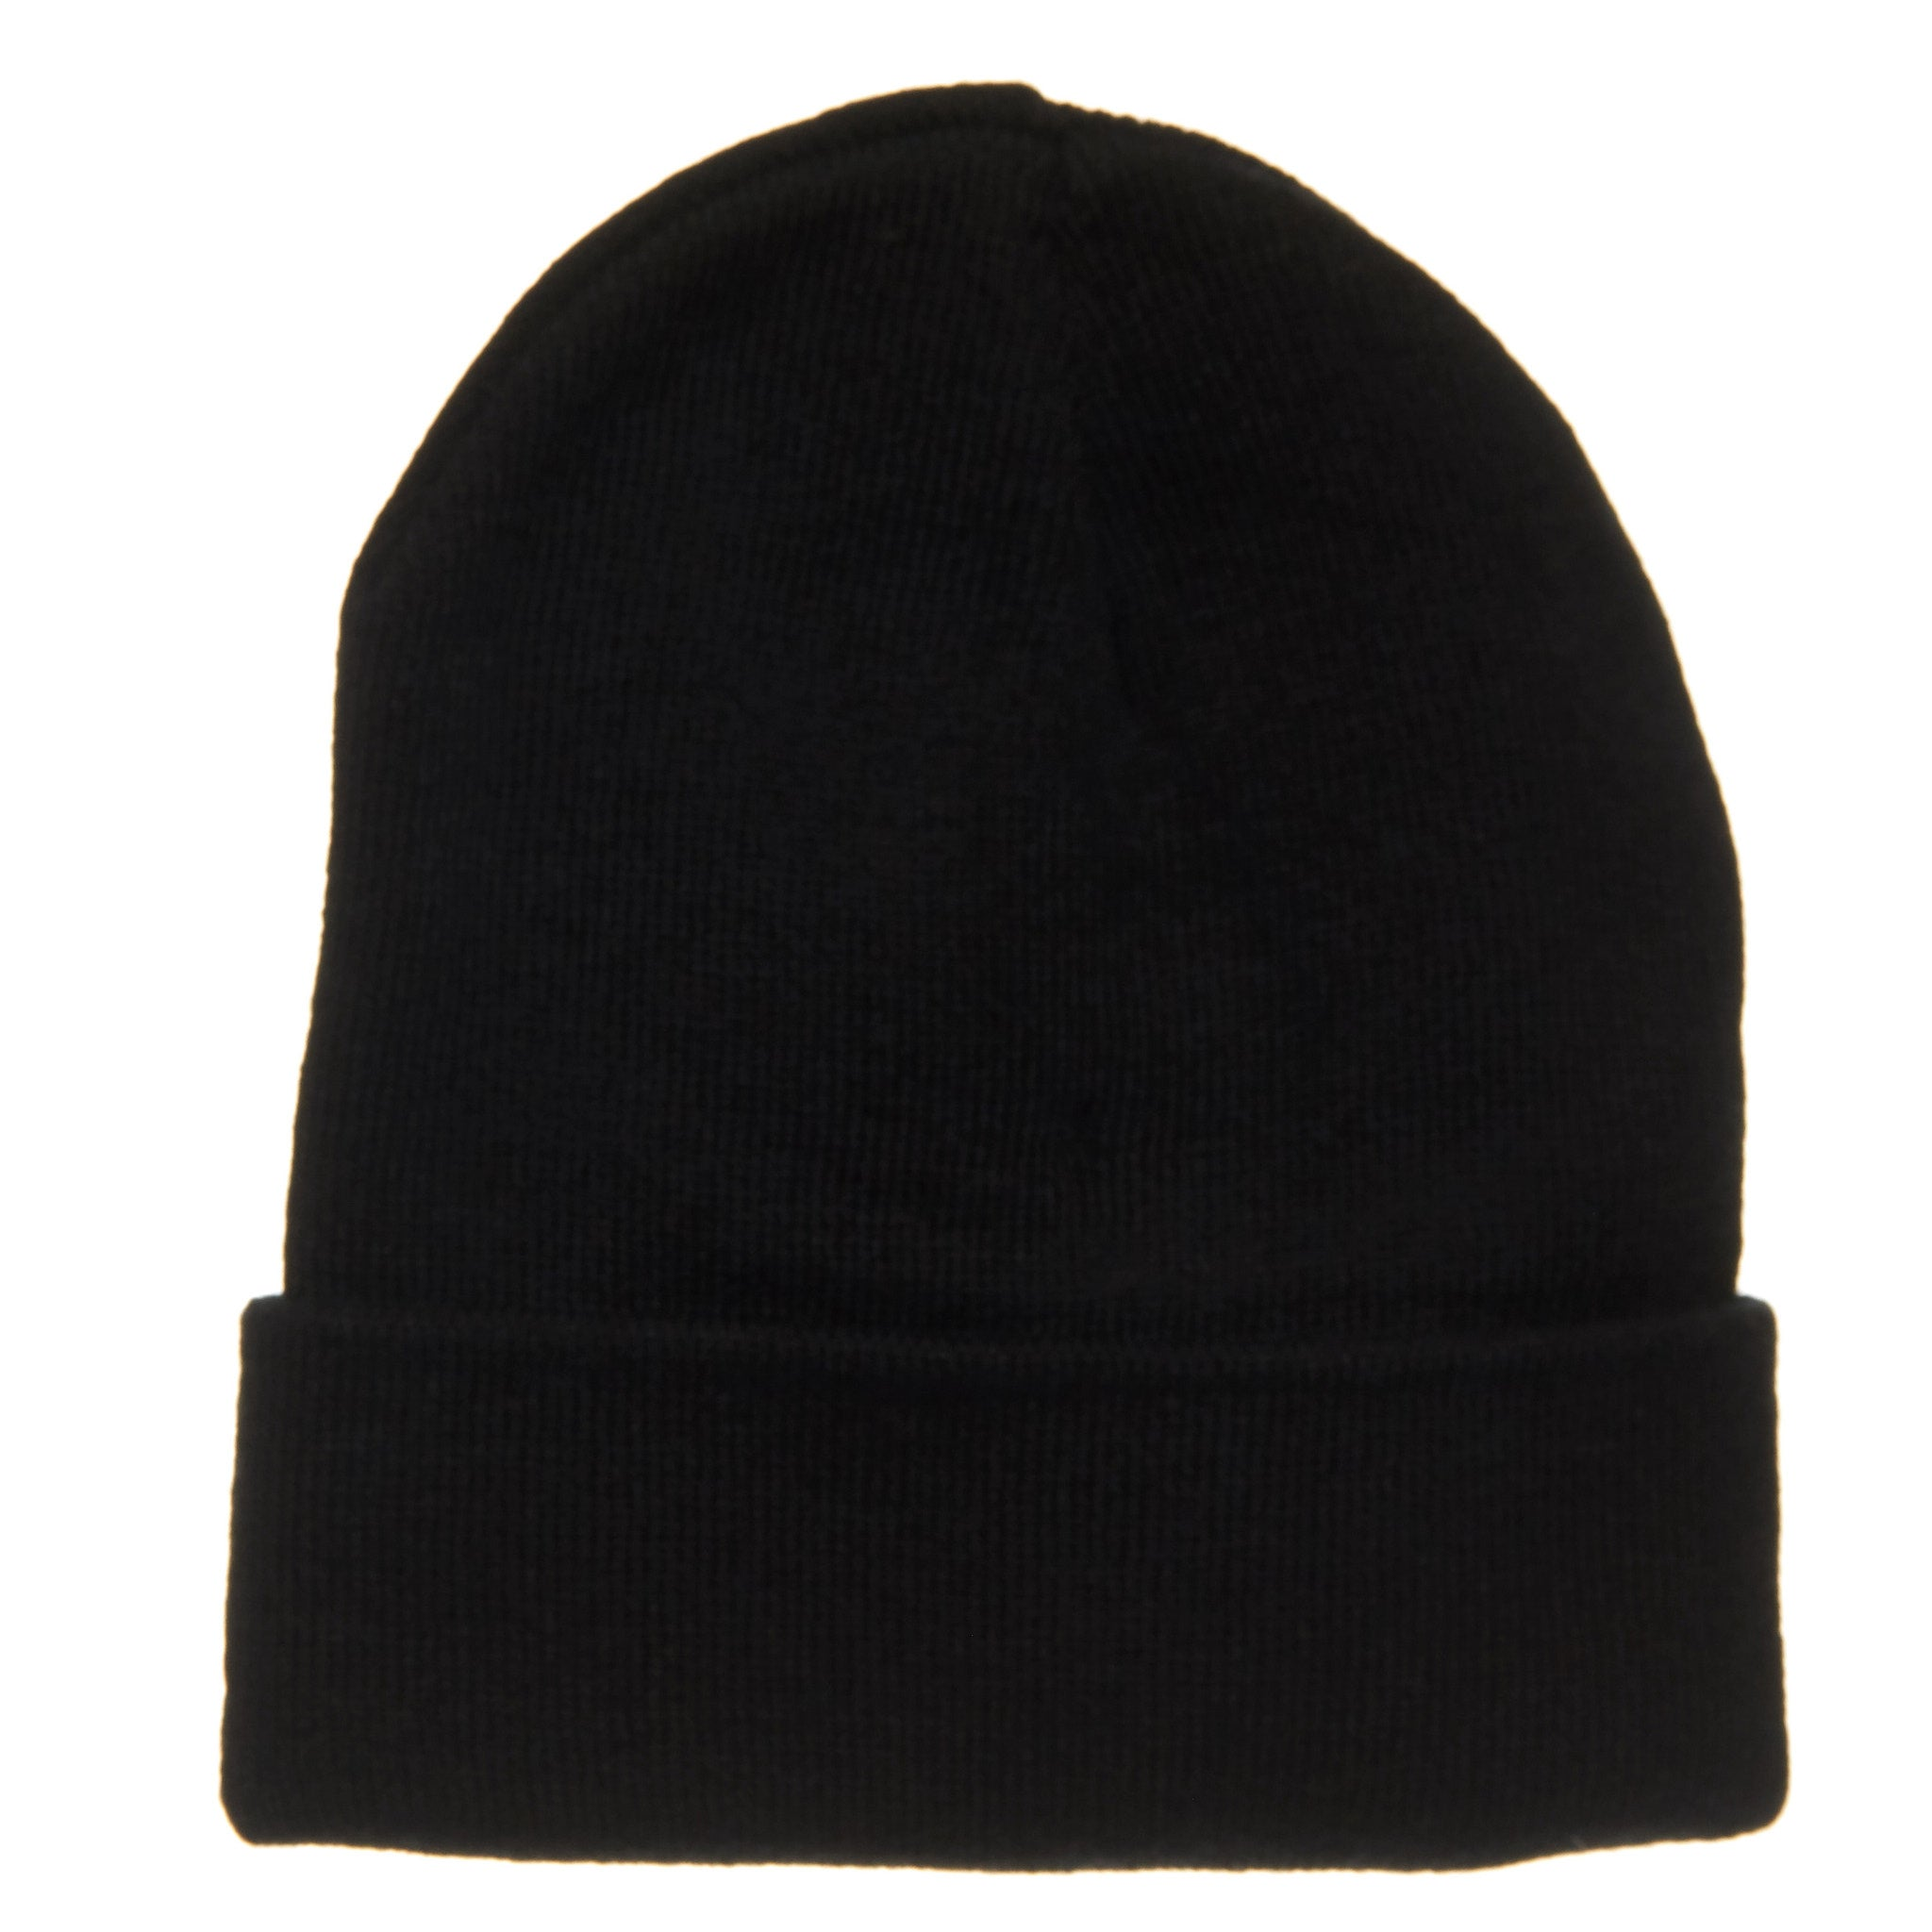 Watch Knit Cap